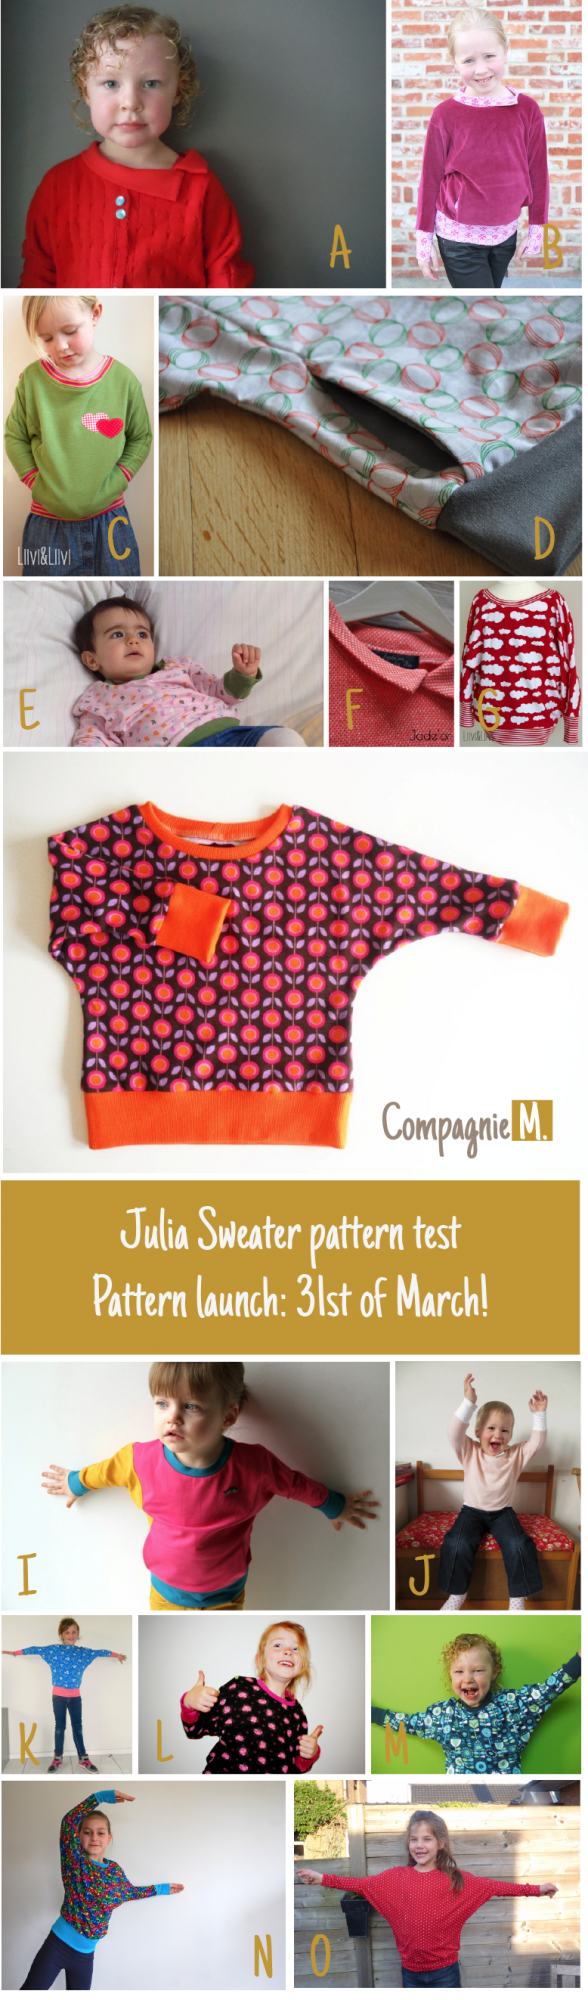 Compagnie-M_overview pattern test Julia sweater